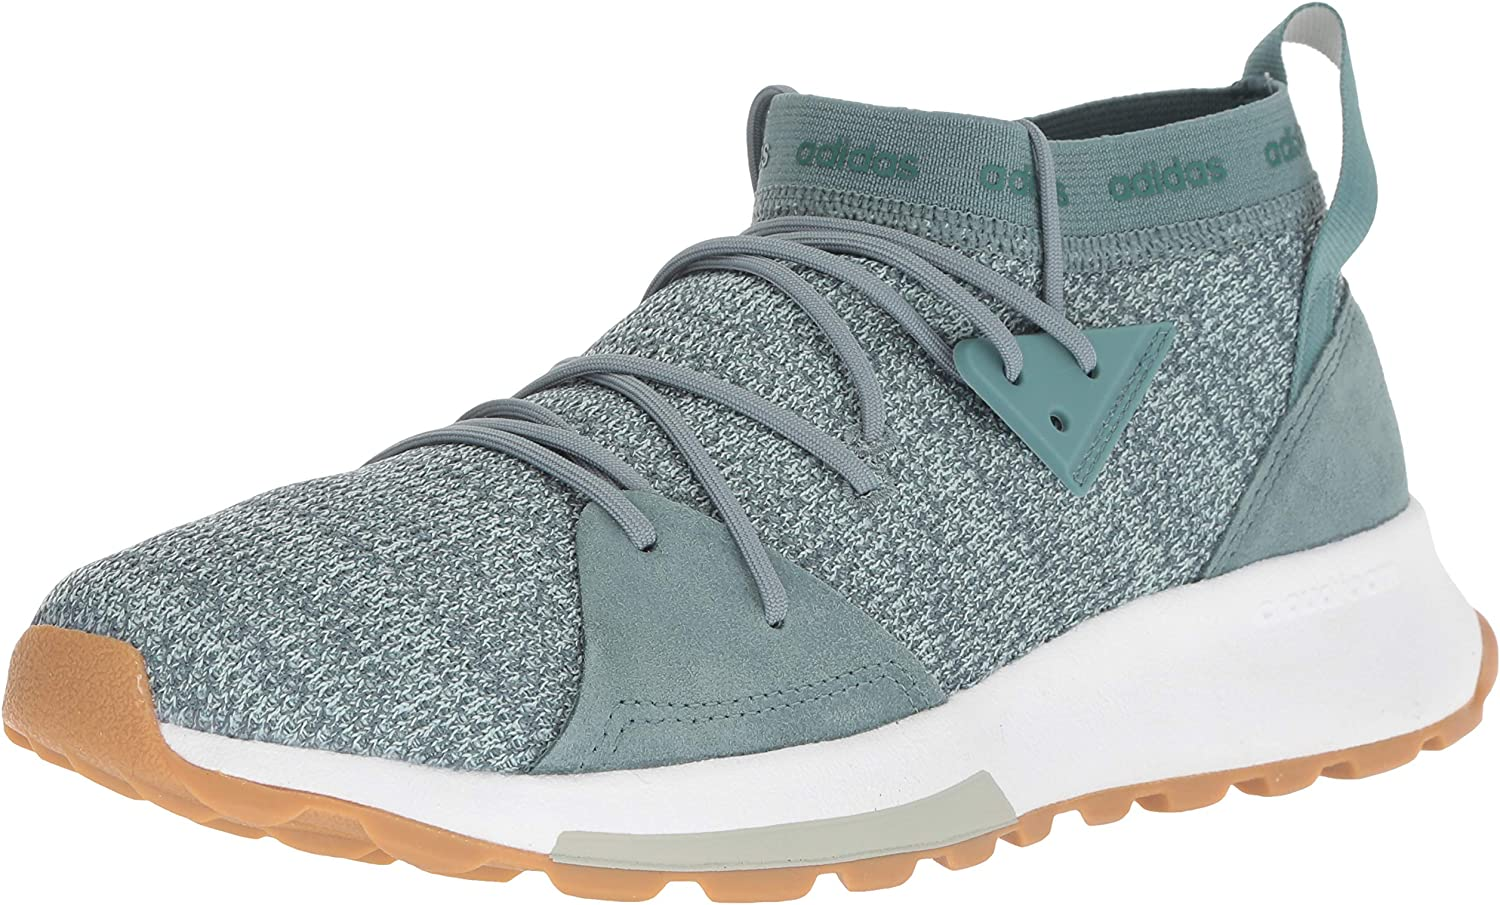 adidas Women s Quesa Running Shoe, raw Green ash Green ash Silver, 8.5 M US